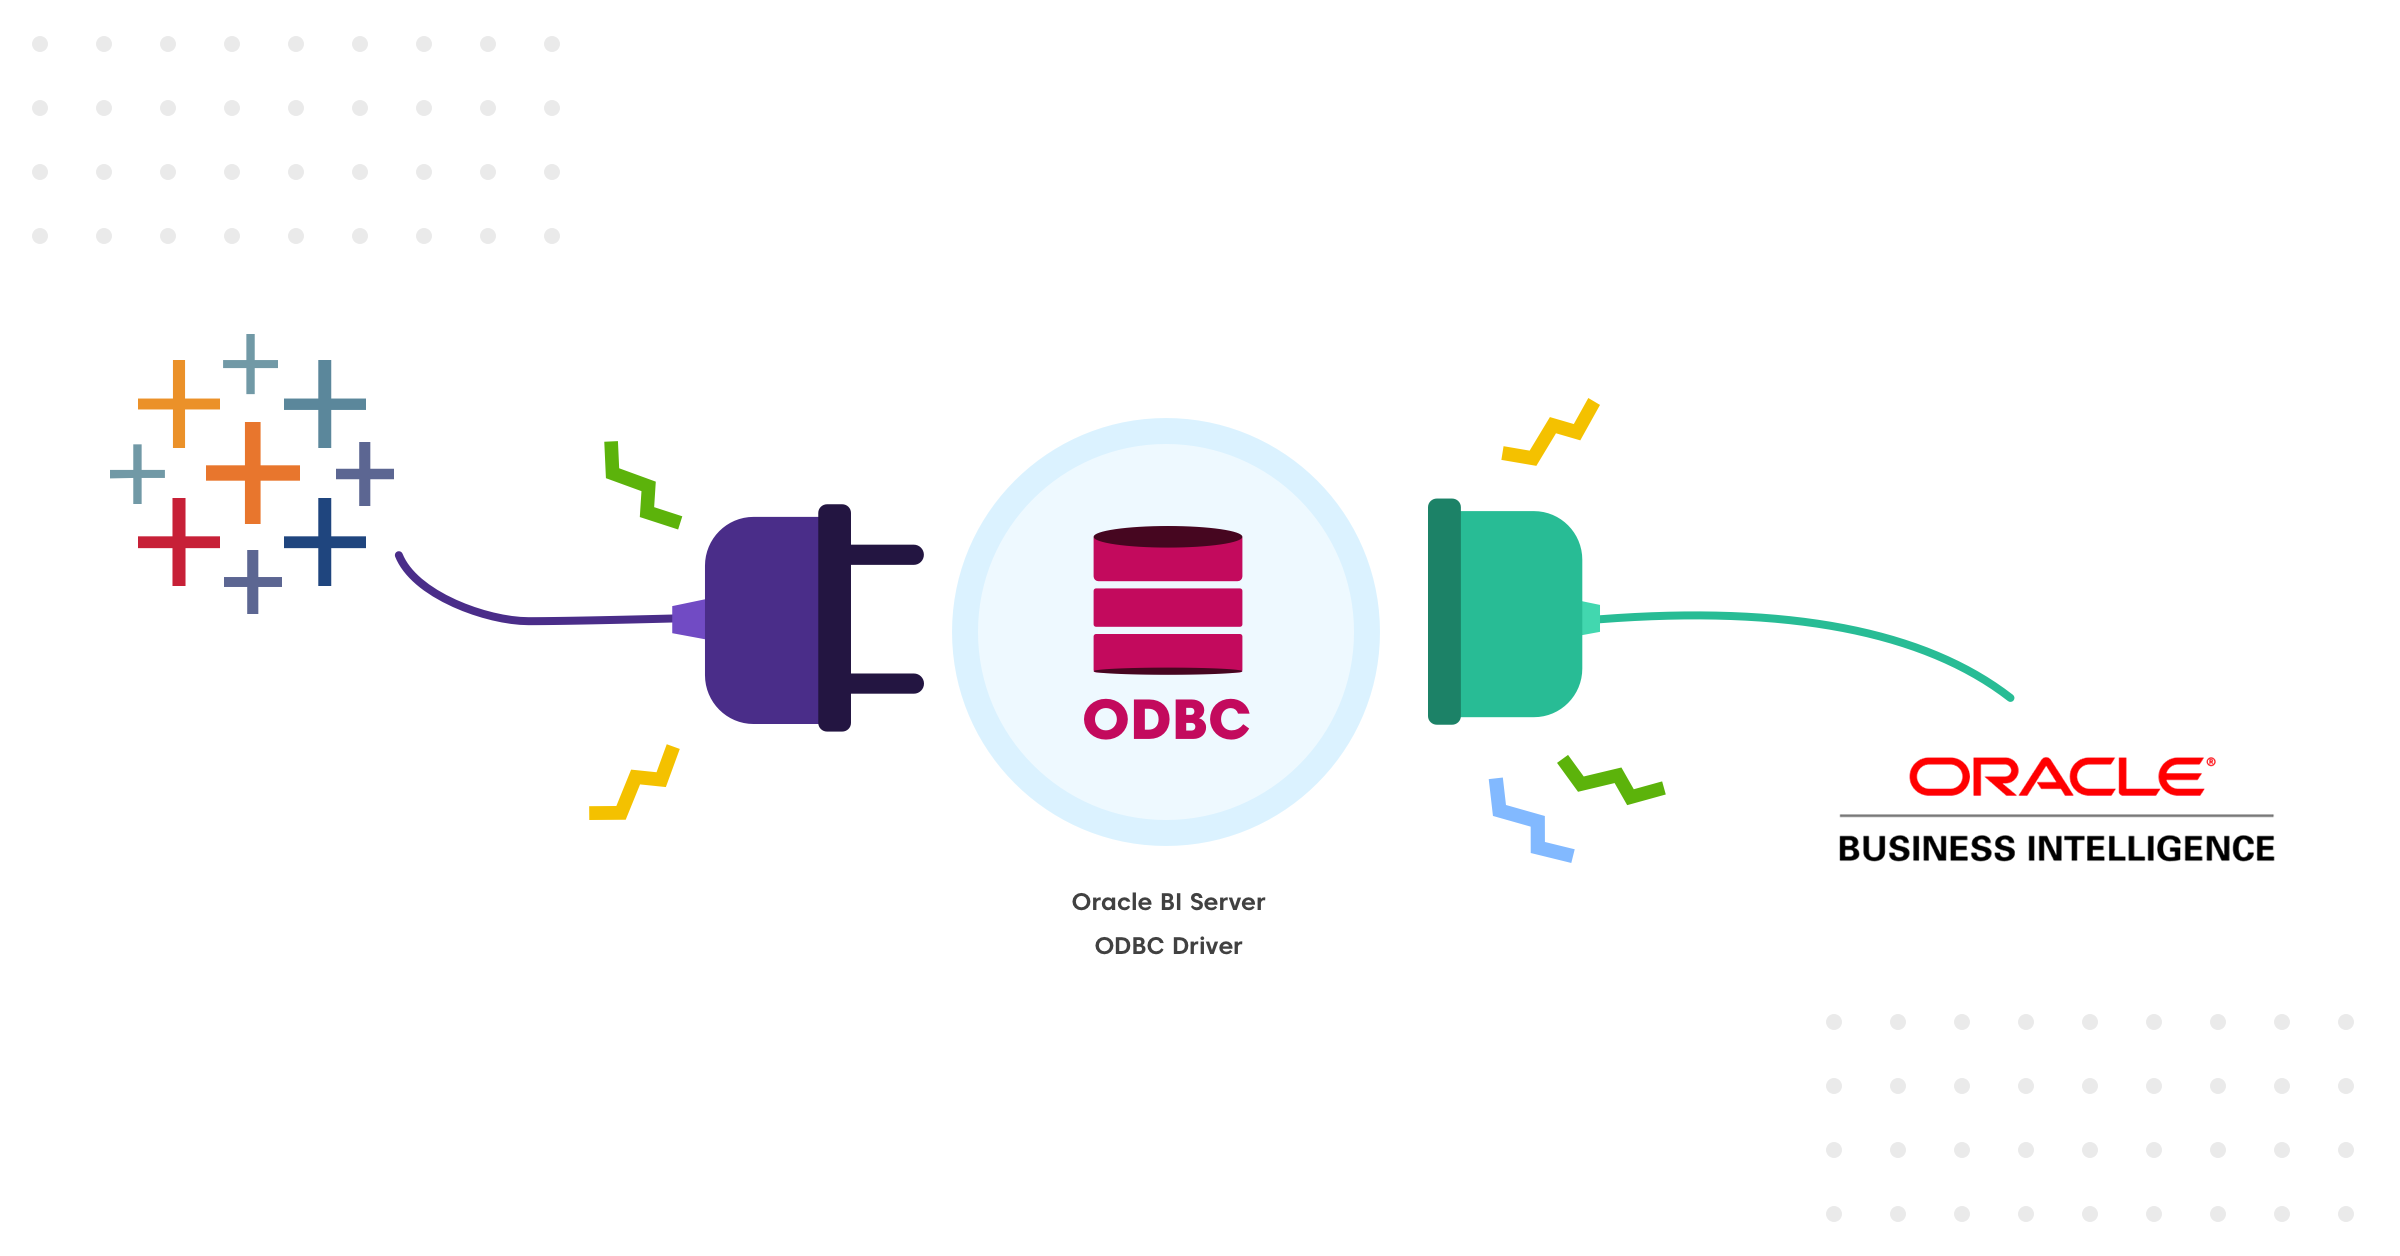 Connect Tableau to OBIEE using Oracle BI Server ODBC Driver